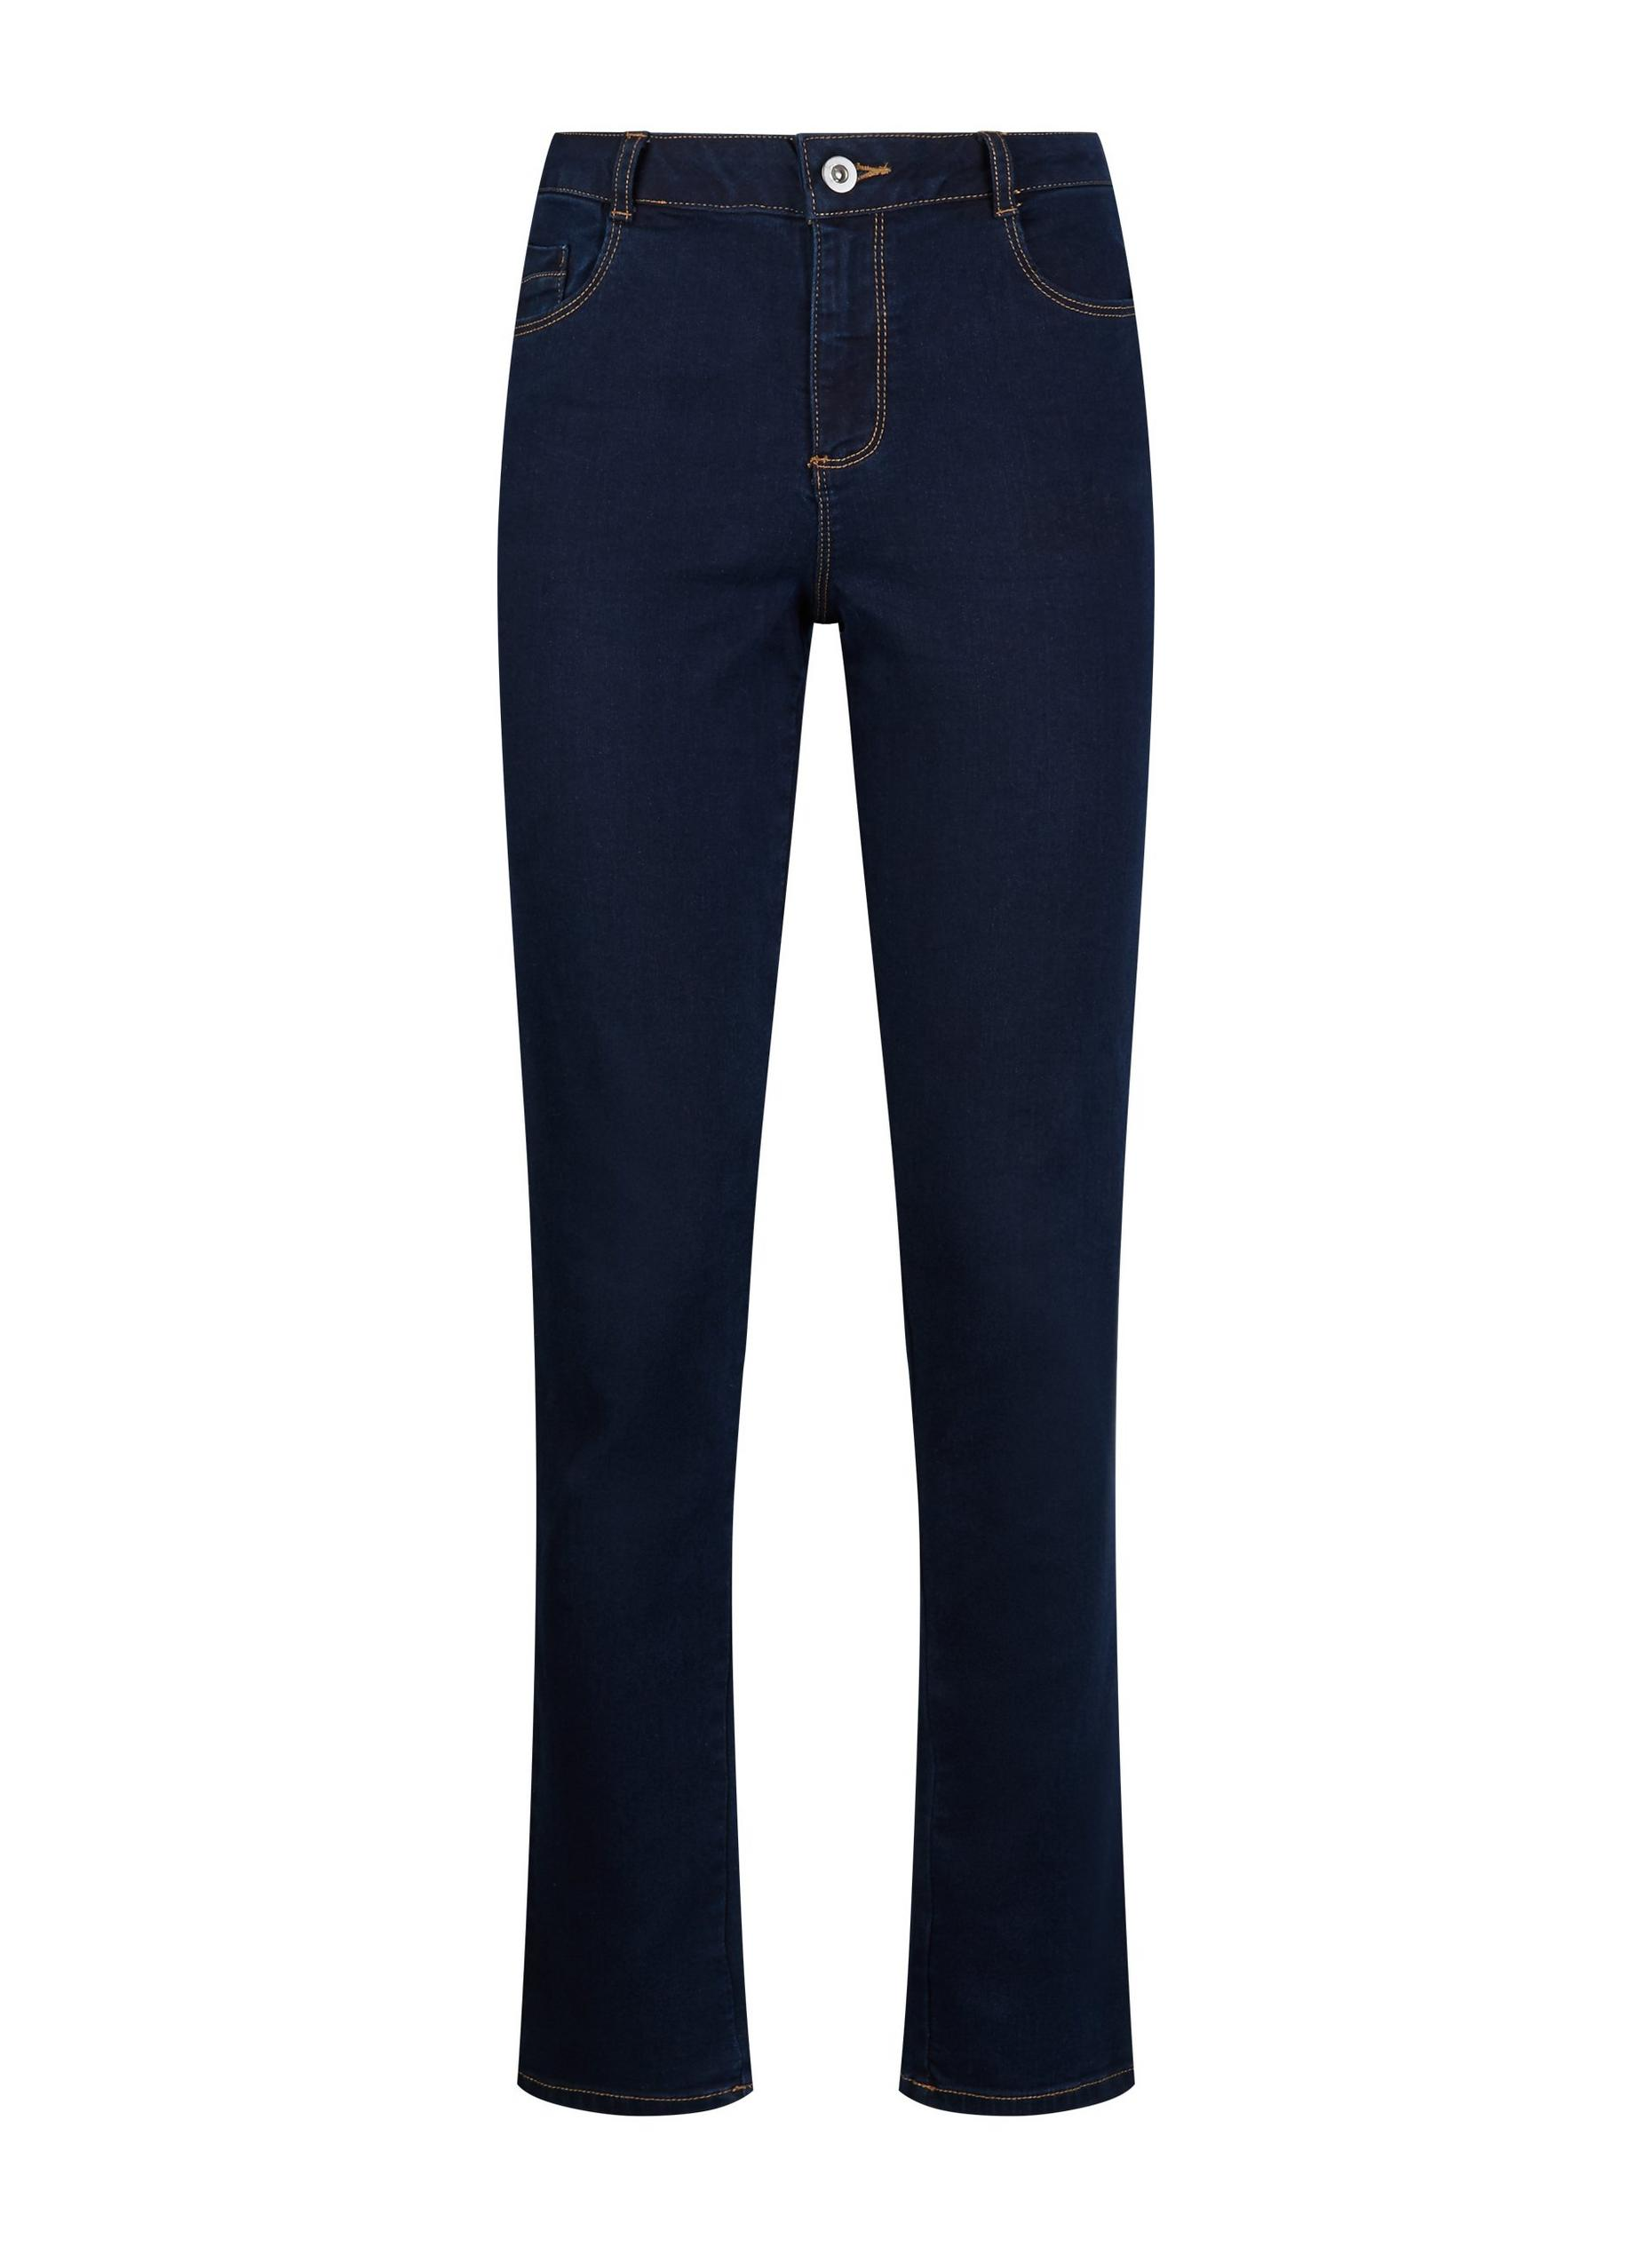 Indigo Ellis Slim Fit Denim Jeans